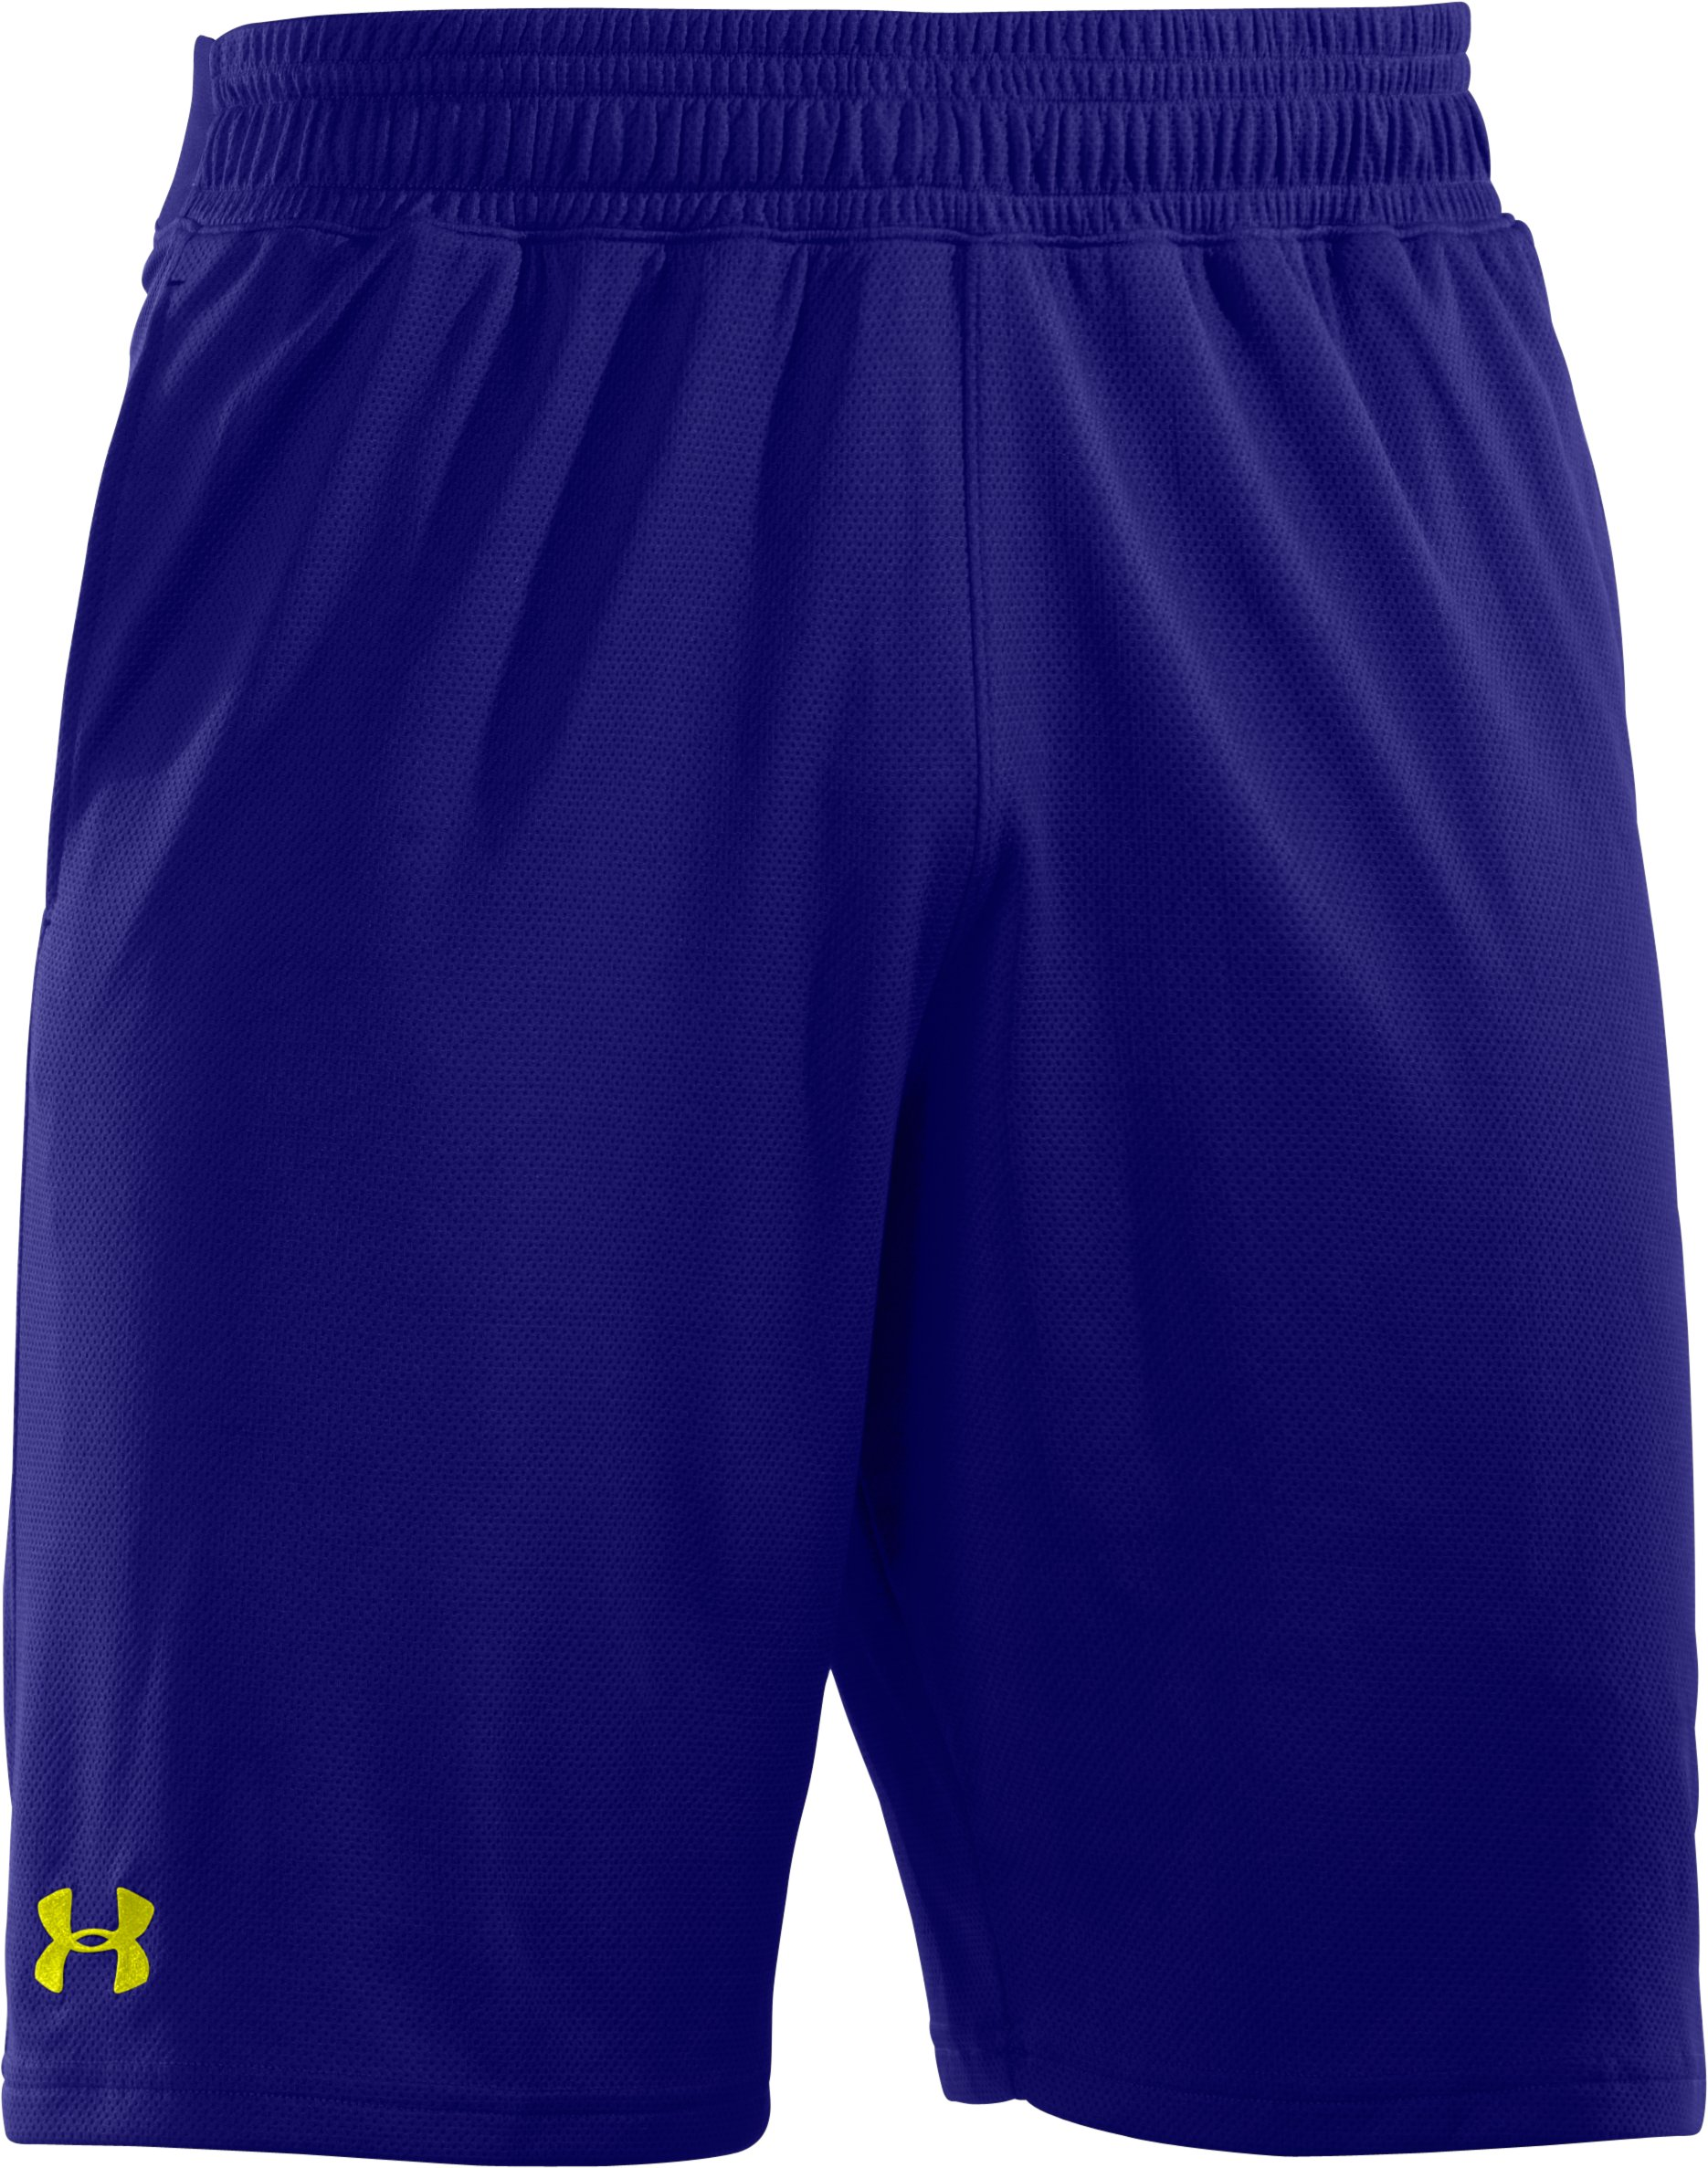 Men's UA Reflex Shorts, Caspian